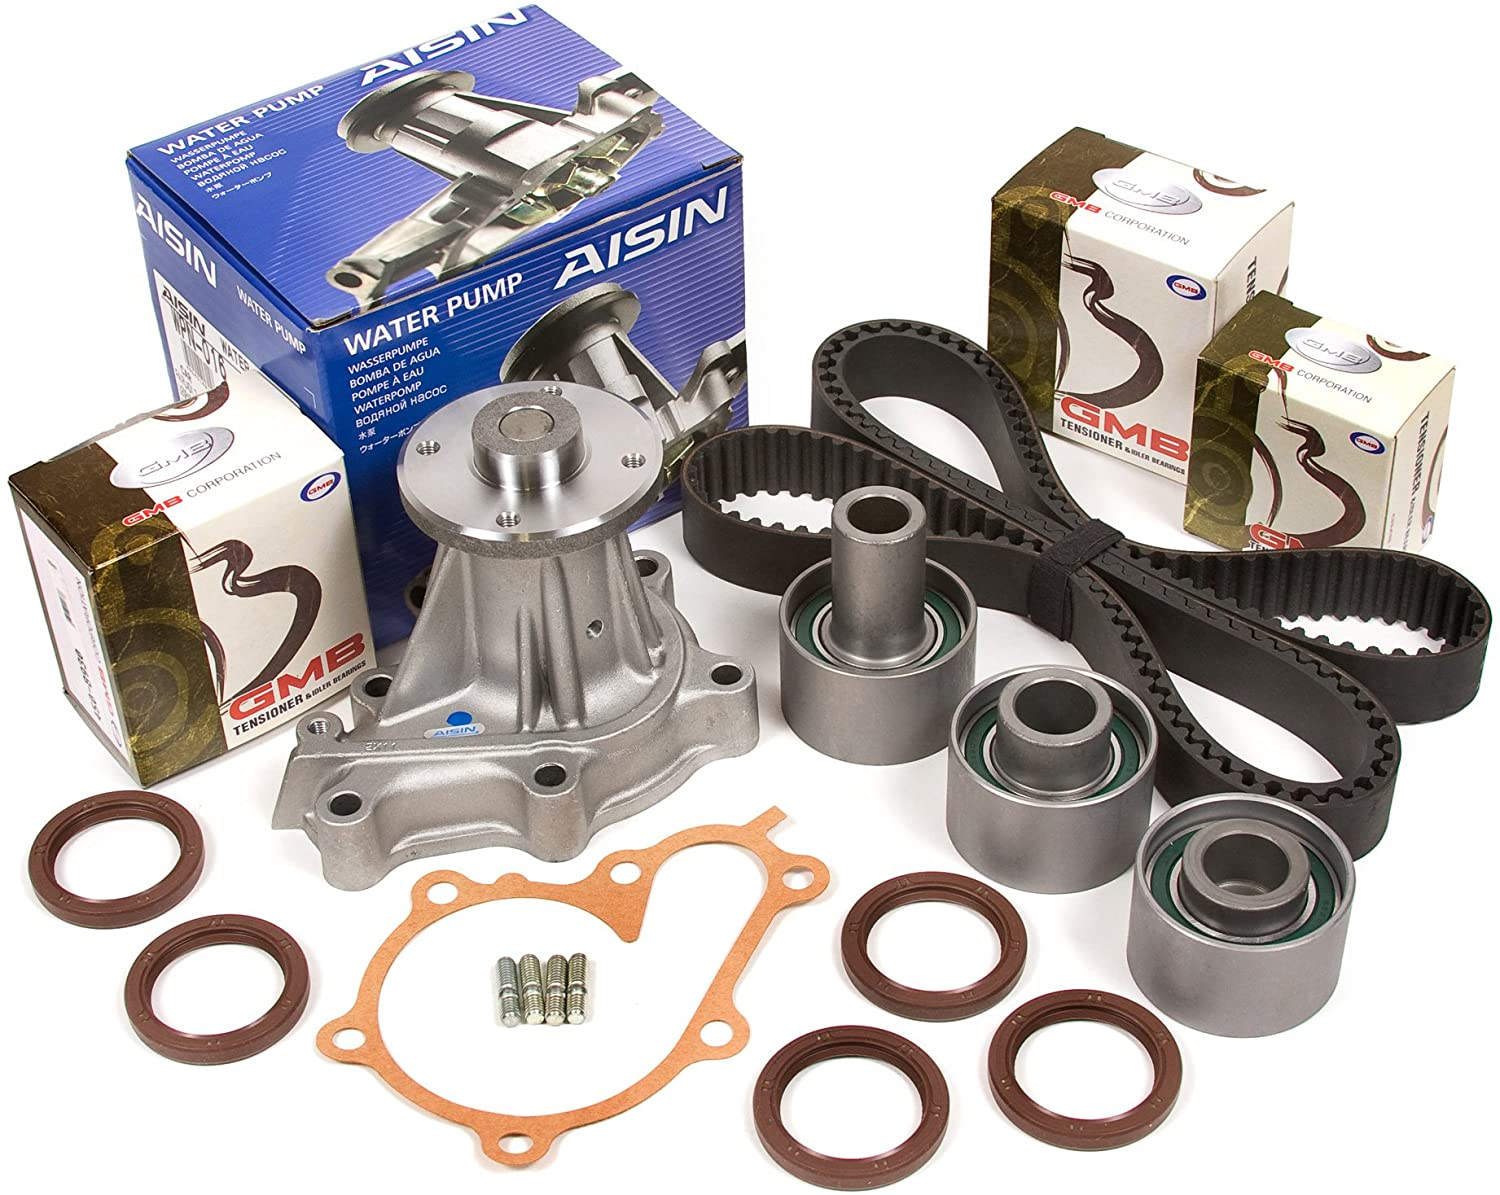 Evergreen TBK180WPA Compatible With Nissan 300ZX 3.0L Turbo VG30DETT Timing Belt Kit AISIN Water Pump